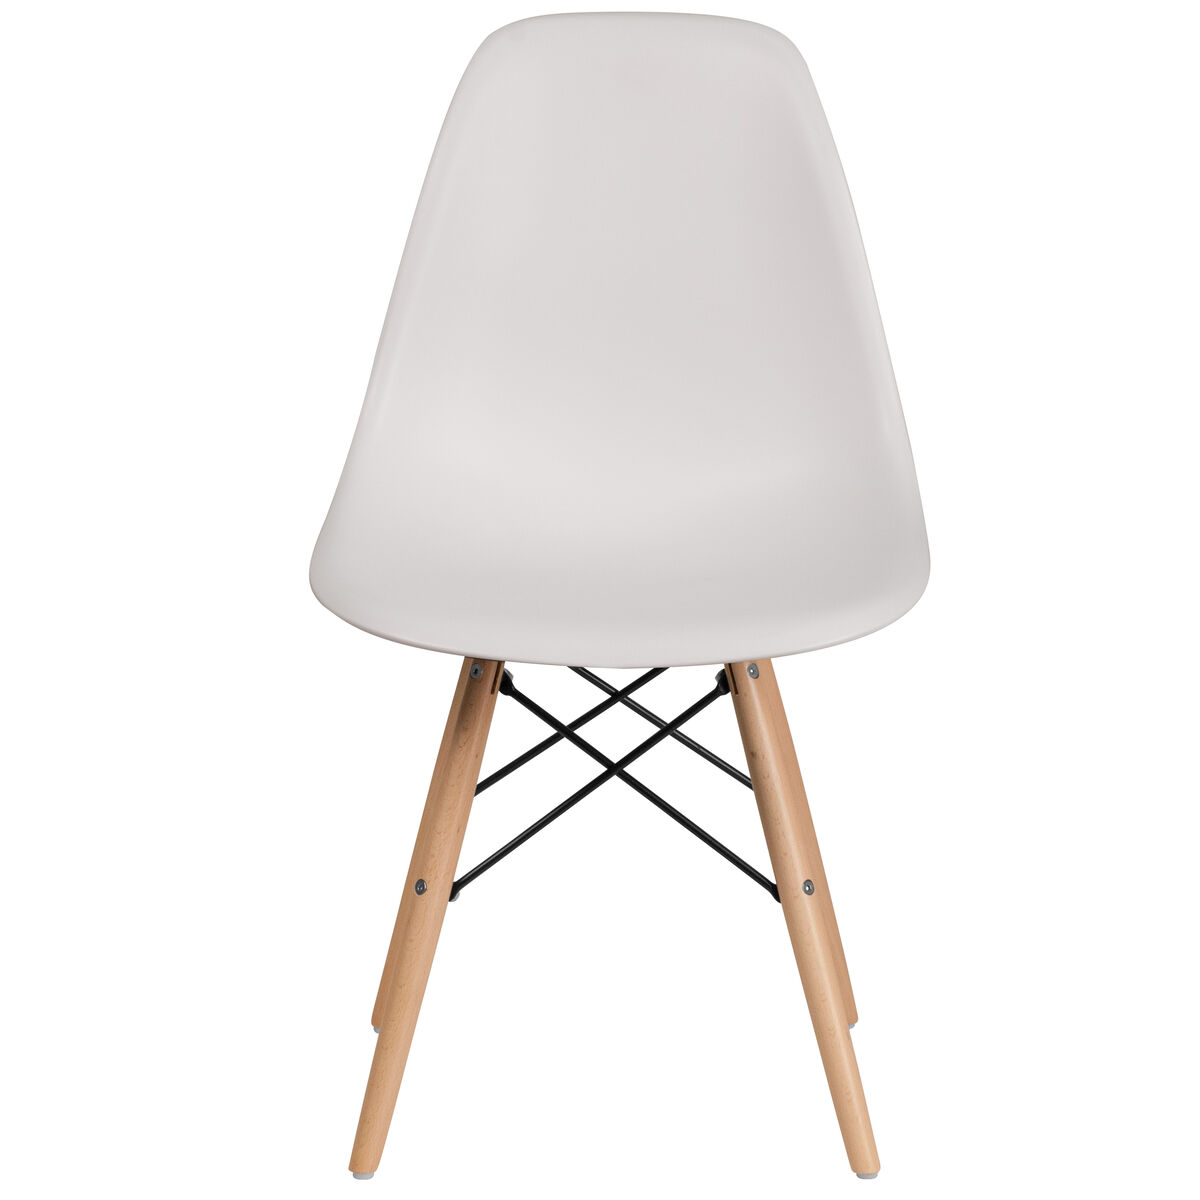 Miraculous Elon Series White Plastic Chair With Wooden Legs Ibusinesslaw Wood Chair Design Ideas Ibusinesslaworg